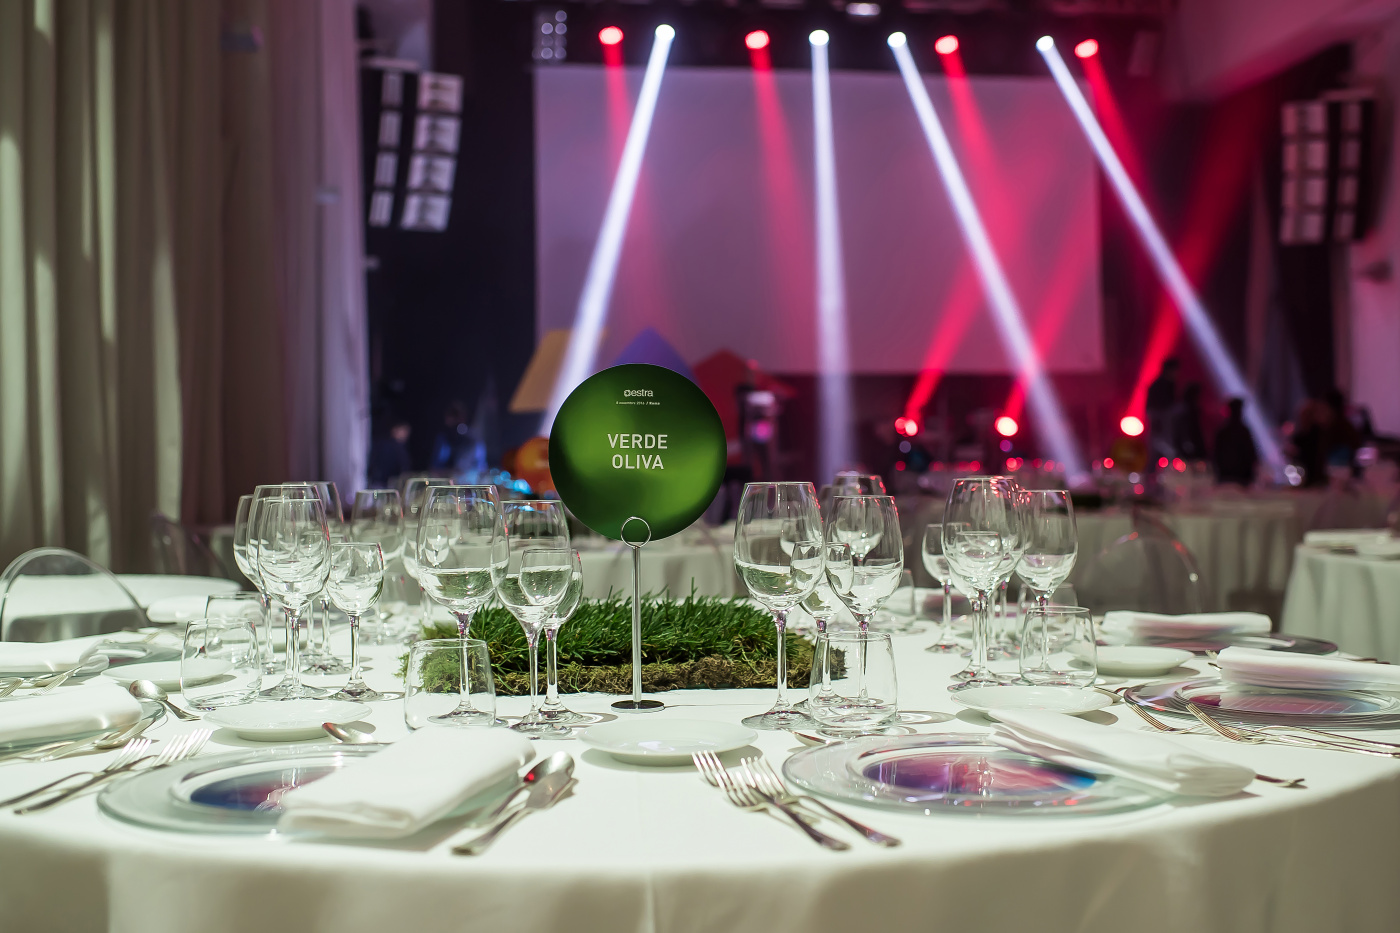 light design for event in rome with round table decored with grass